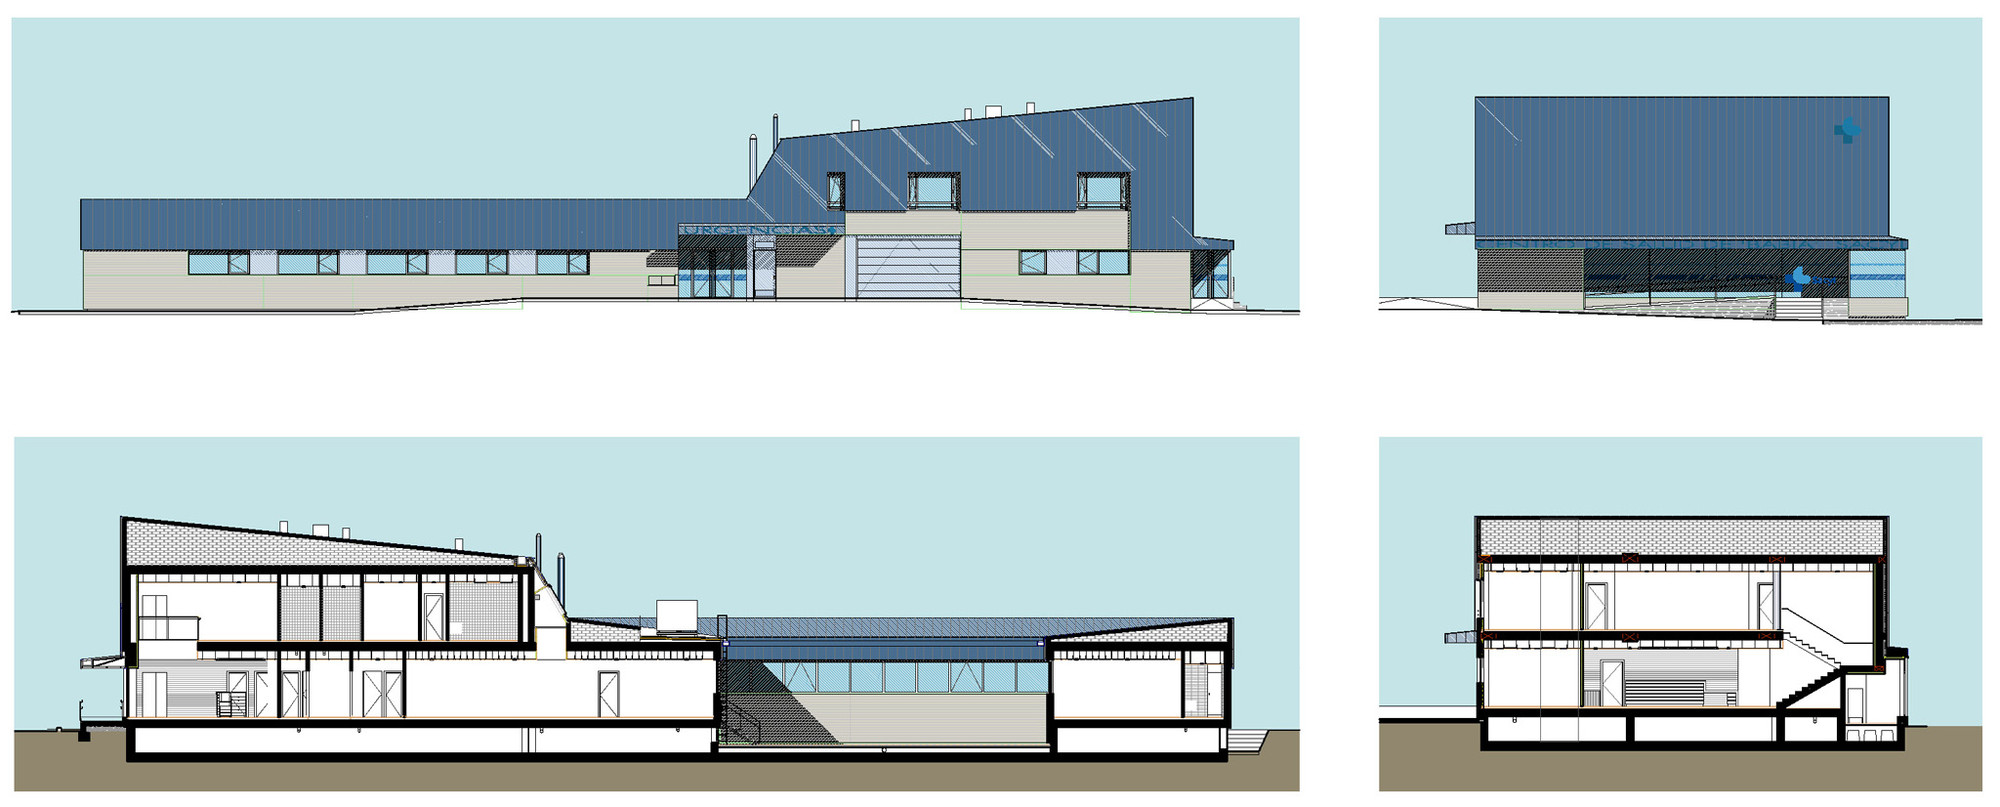 Ping Mall Plan Elevation Section : Babia health center virginiaarq archdaily